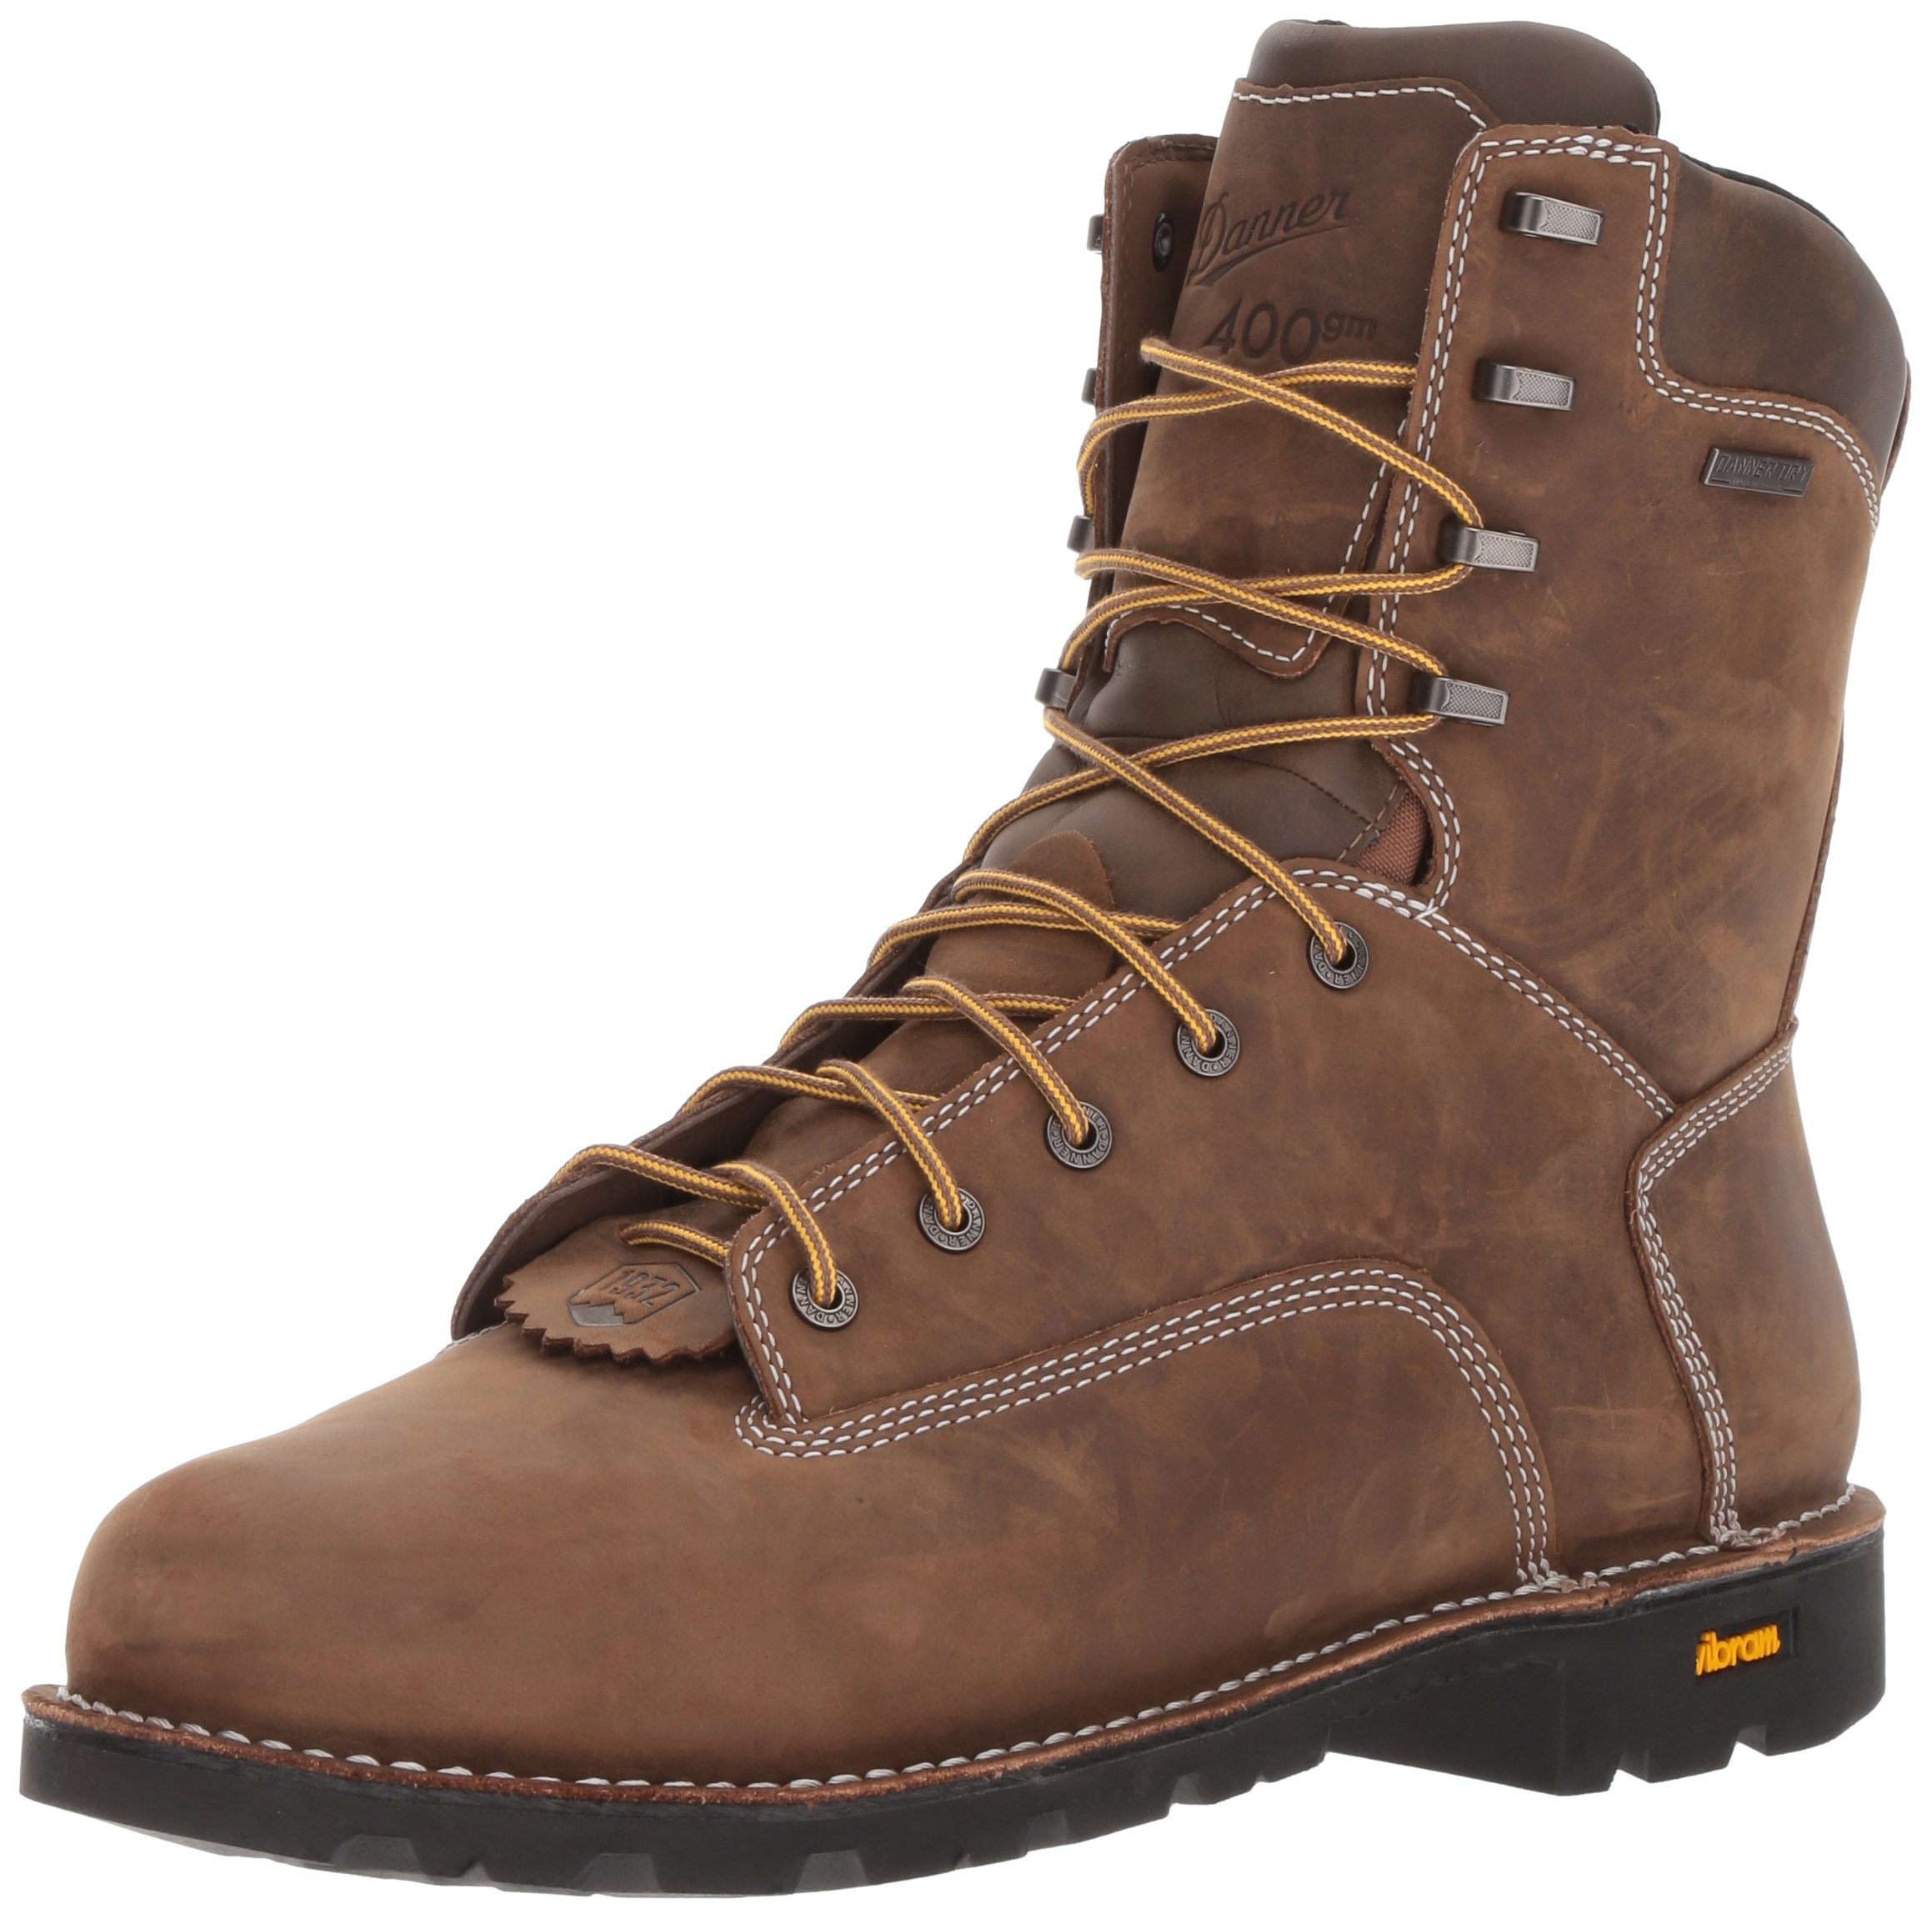 Danner Men's Gritstone Insulated 400G Work Boot, Brown, 12 D US by Danner